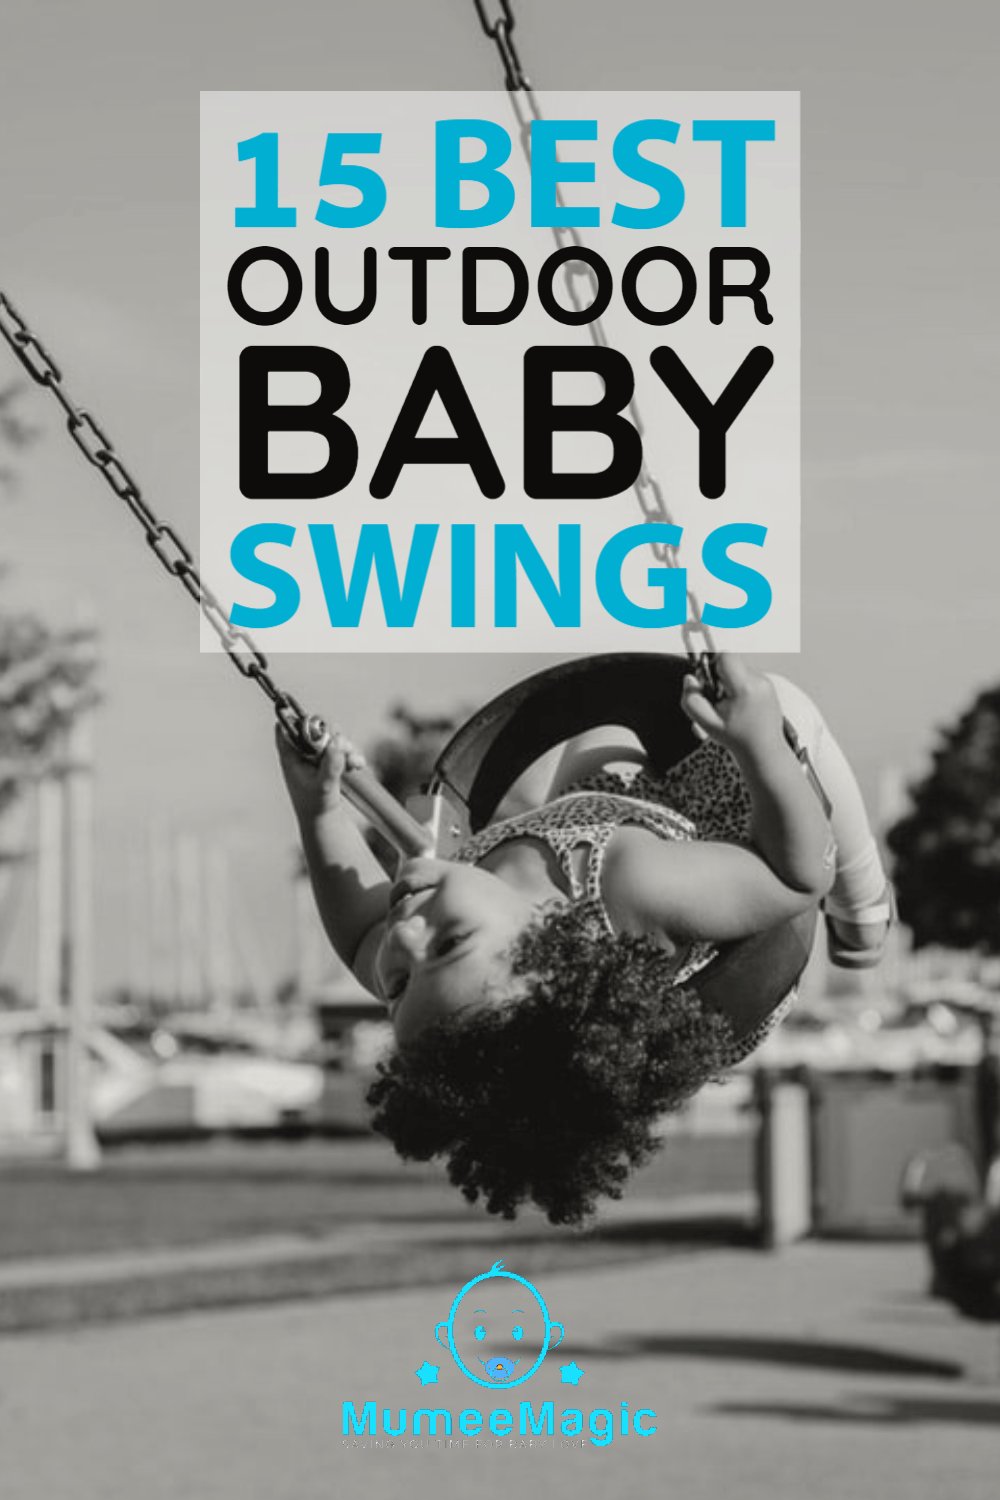 Picture of outdoor baby swing